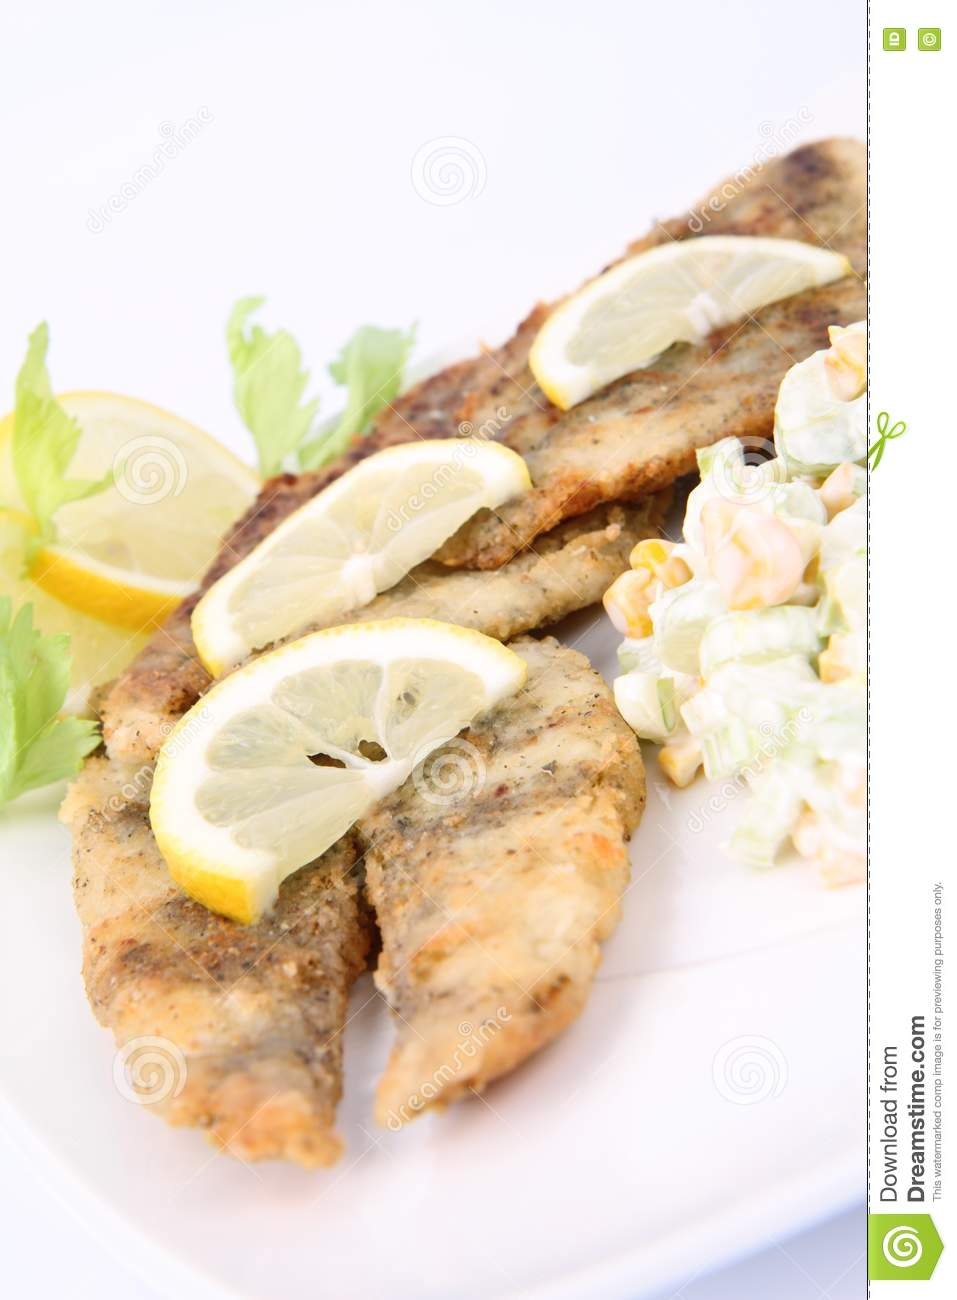 Fried fish with side salad stock photos image 17455143 for Sides for fried fish